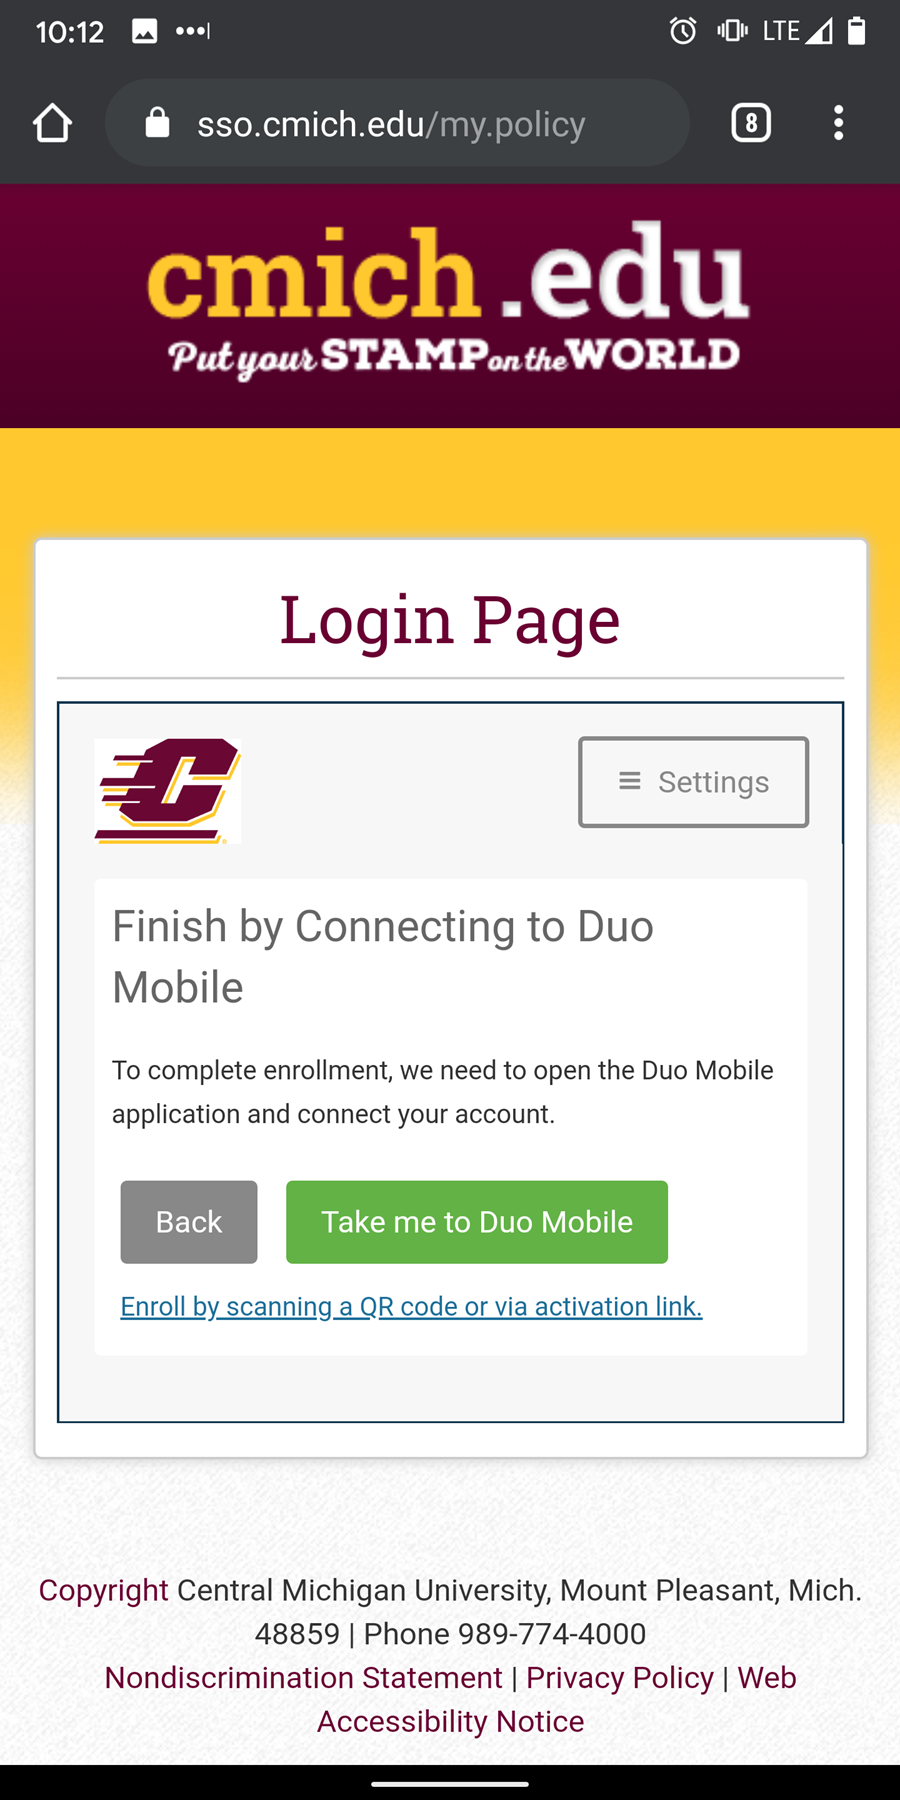 Click complete setup to go to the Duo Mobile app for setup